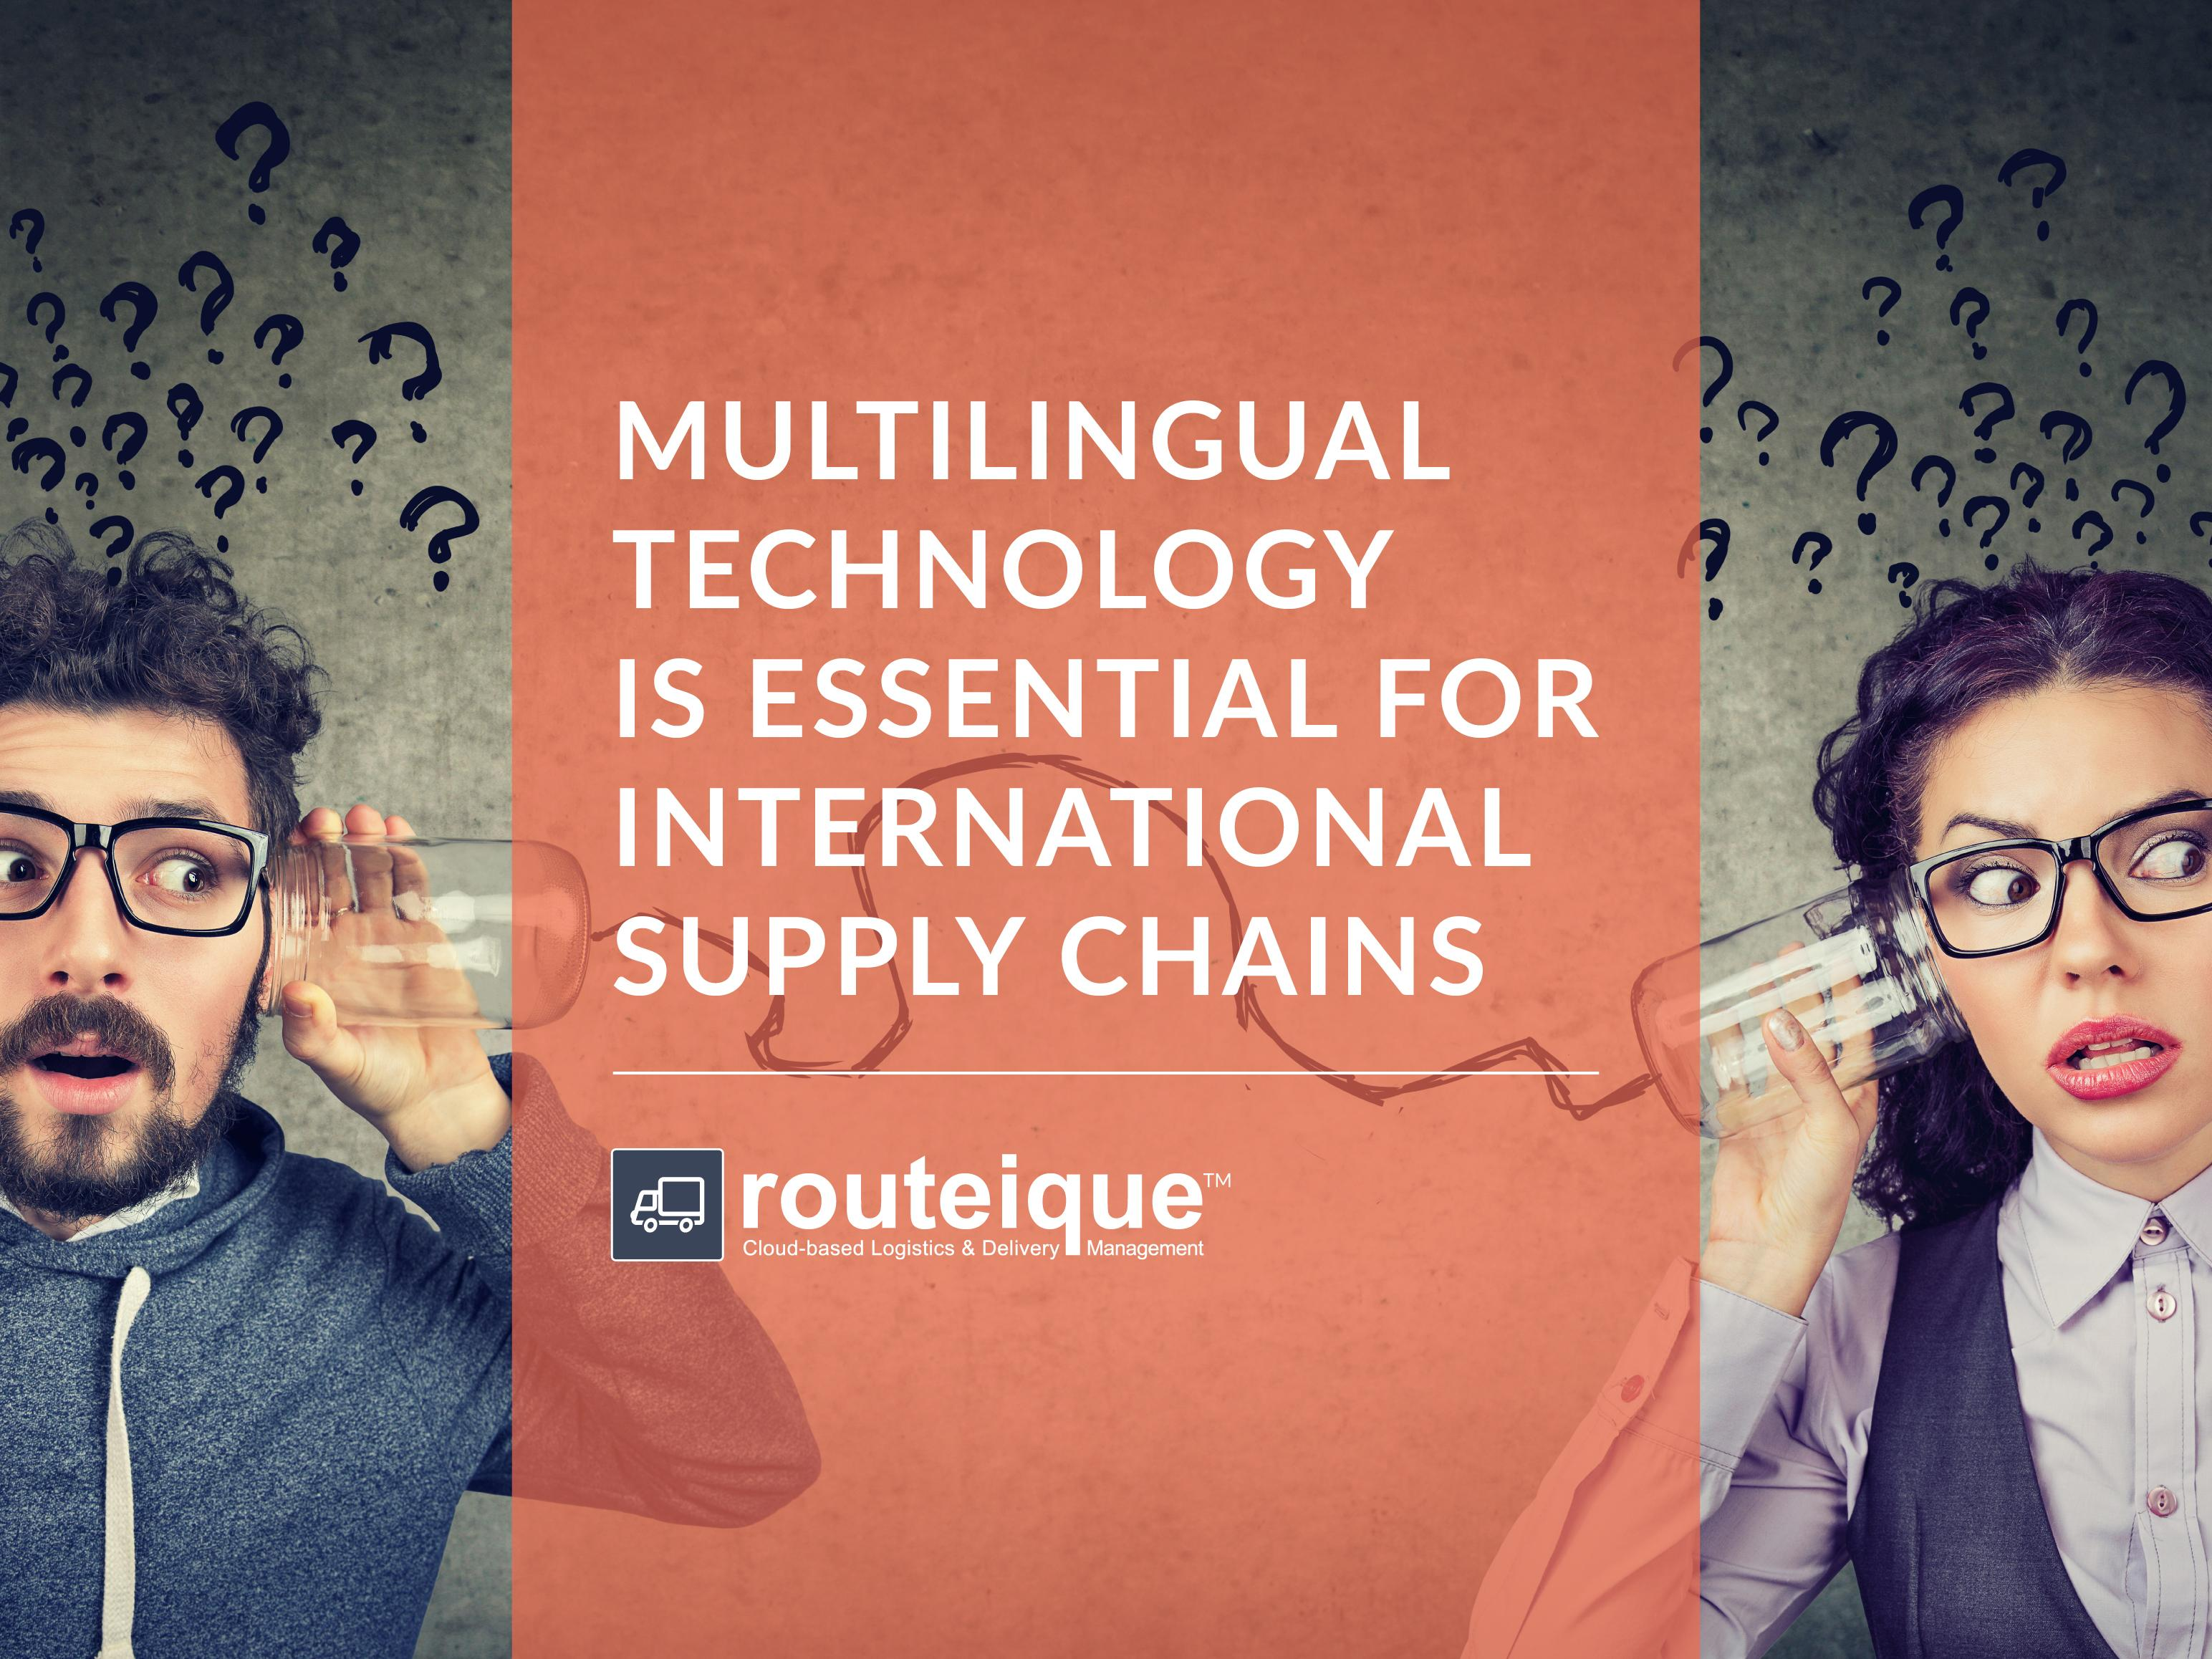 Multilingual Technology is Essential for International Supply Chains